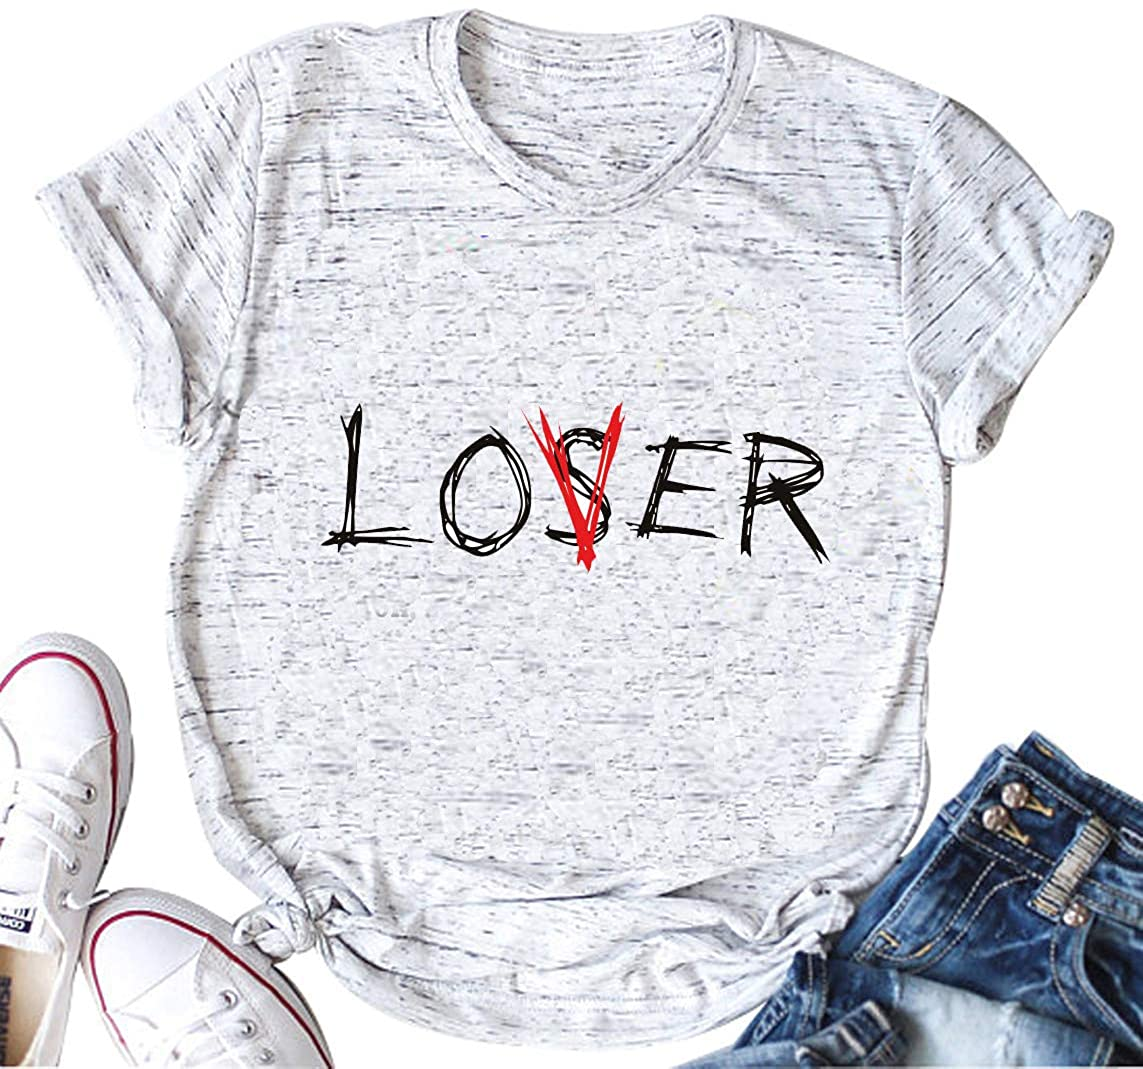 licson Lover Loser Club Shirt Women Funny Casual Inspired Short Sleeve T-Shirt Tops Tee